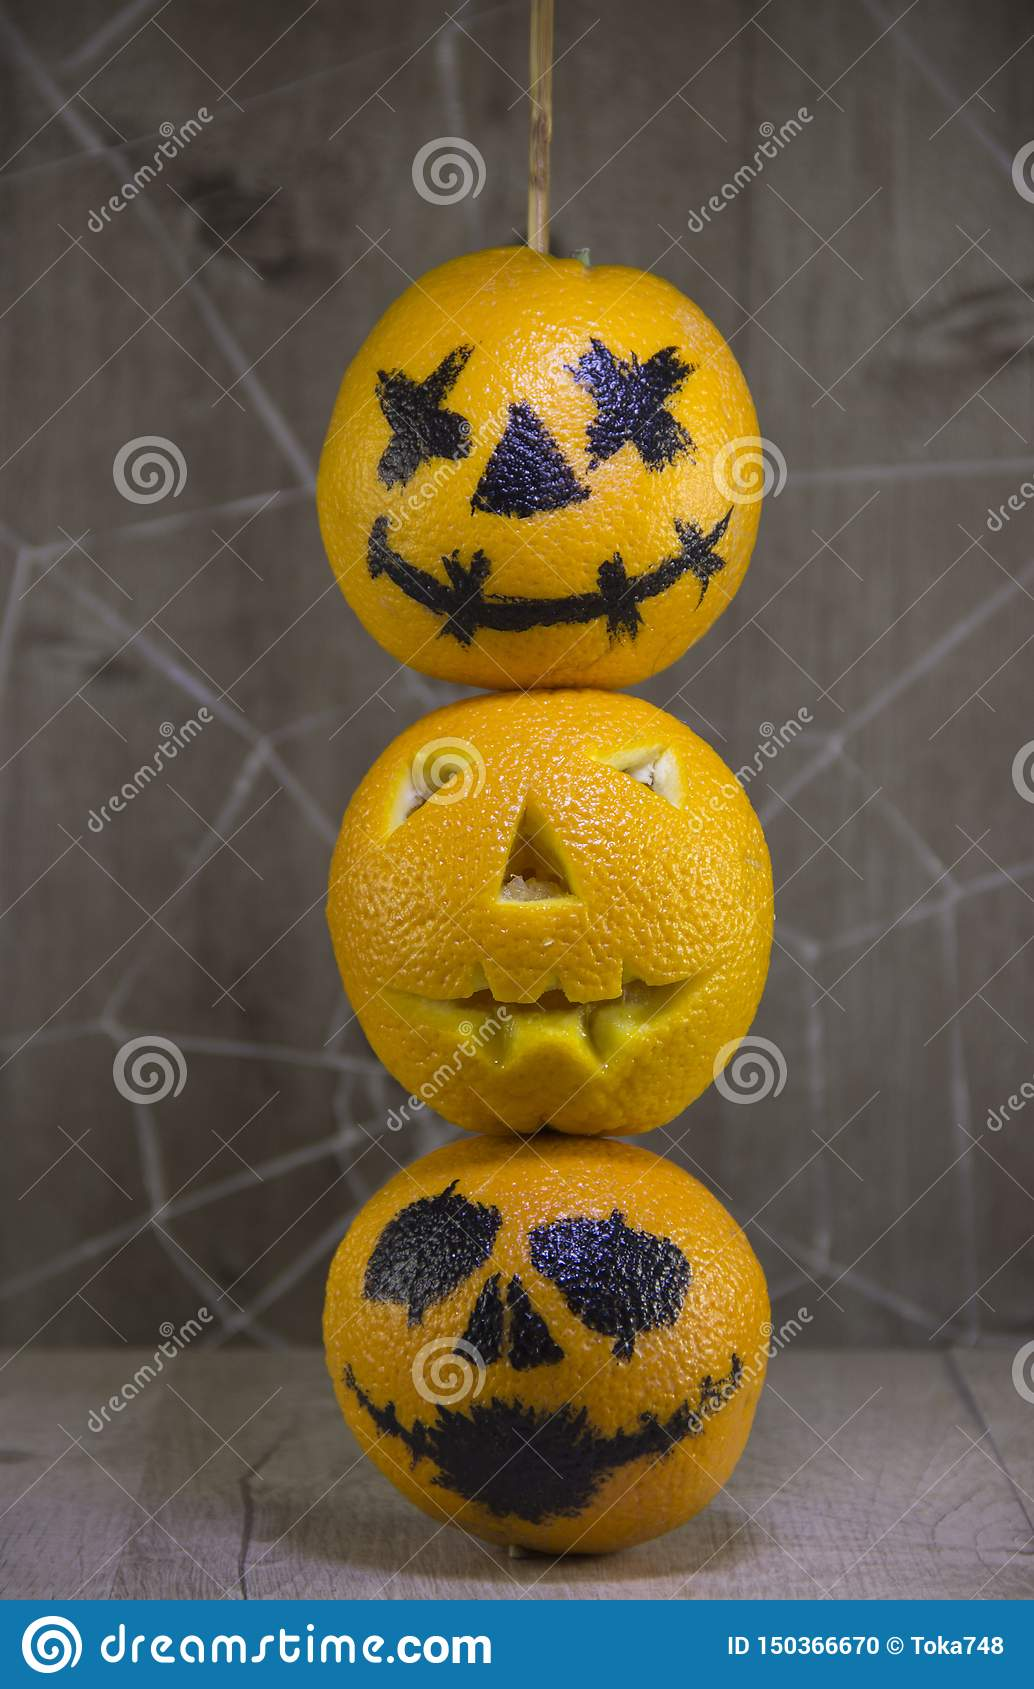 Jack lantern for Halloween of oranges on a wooden background with cobwebs